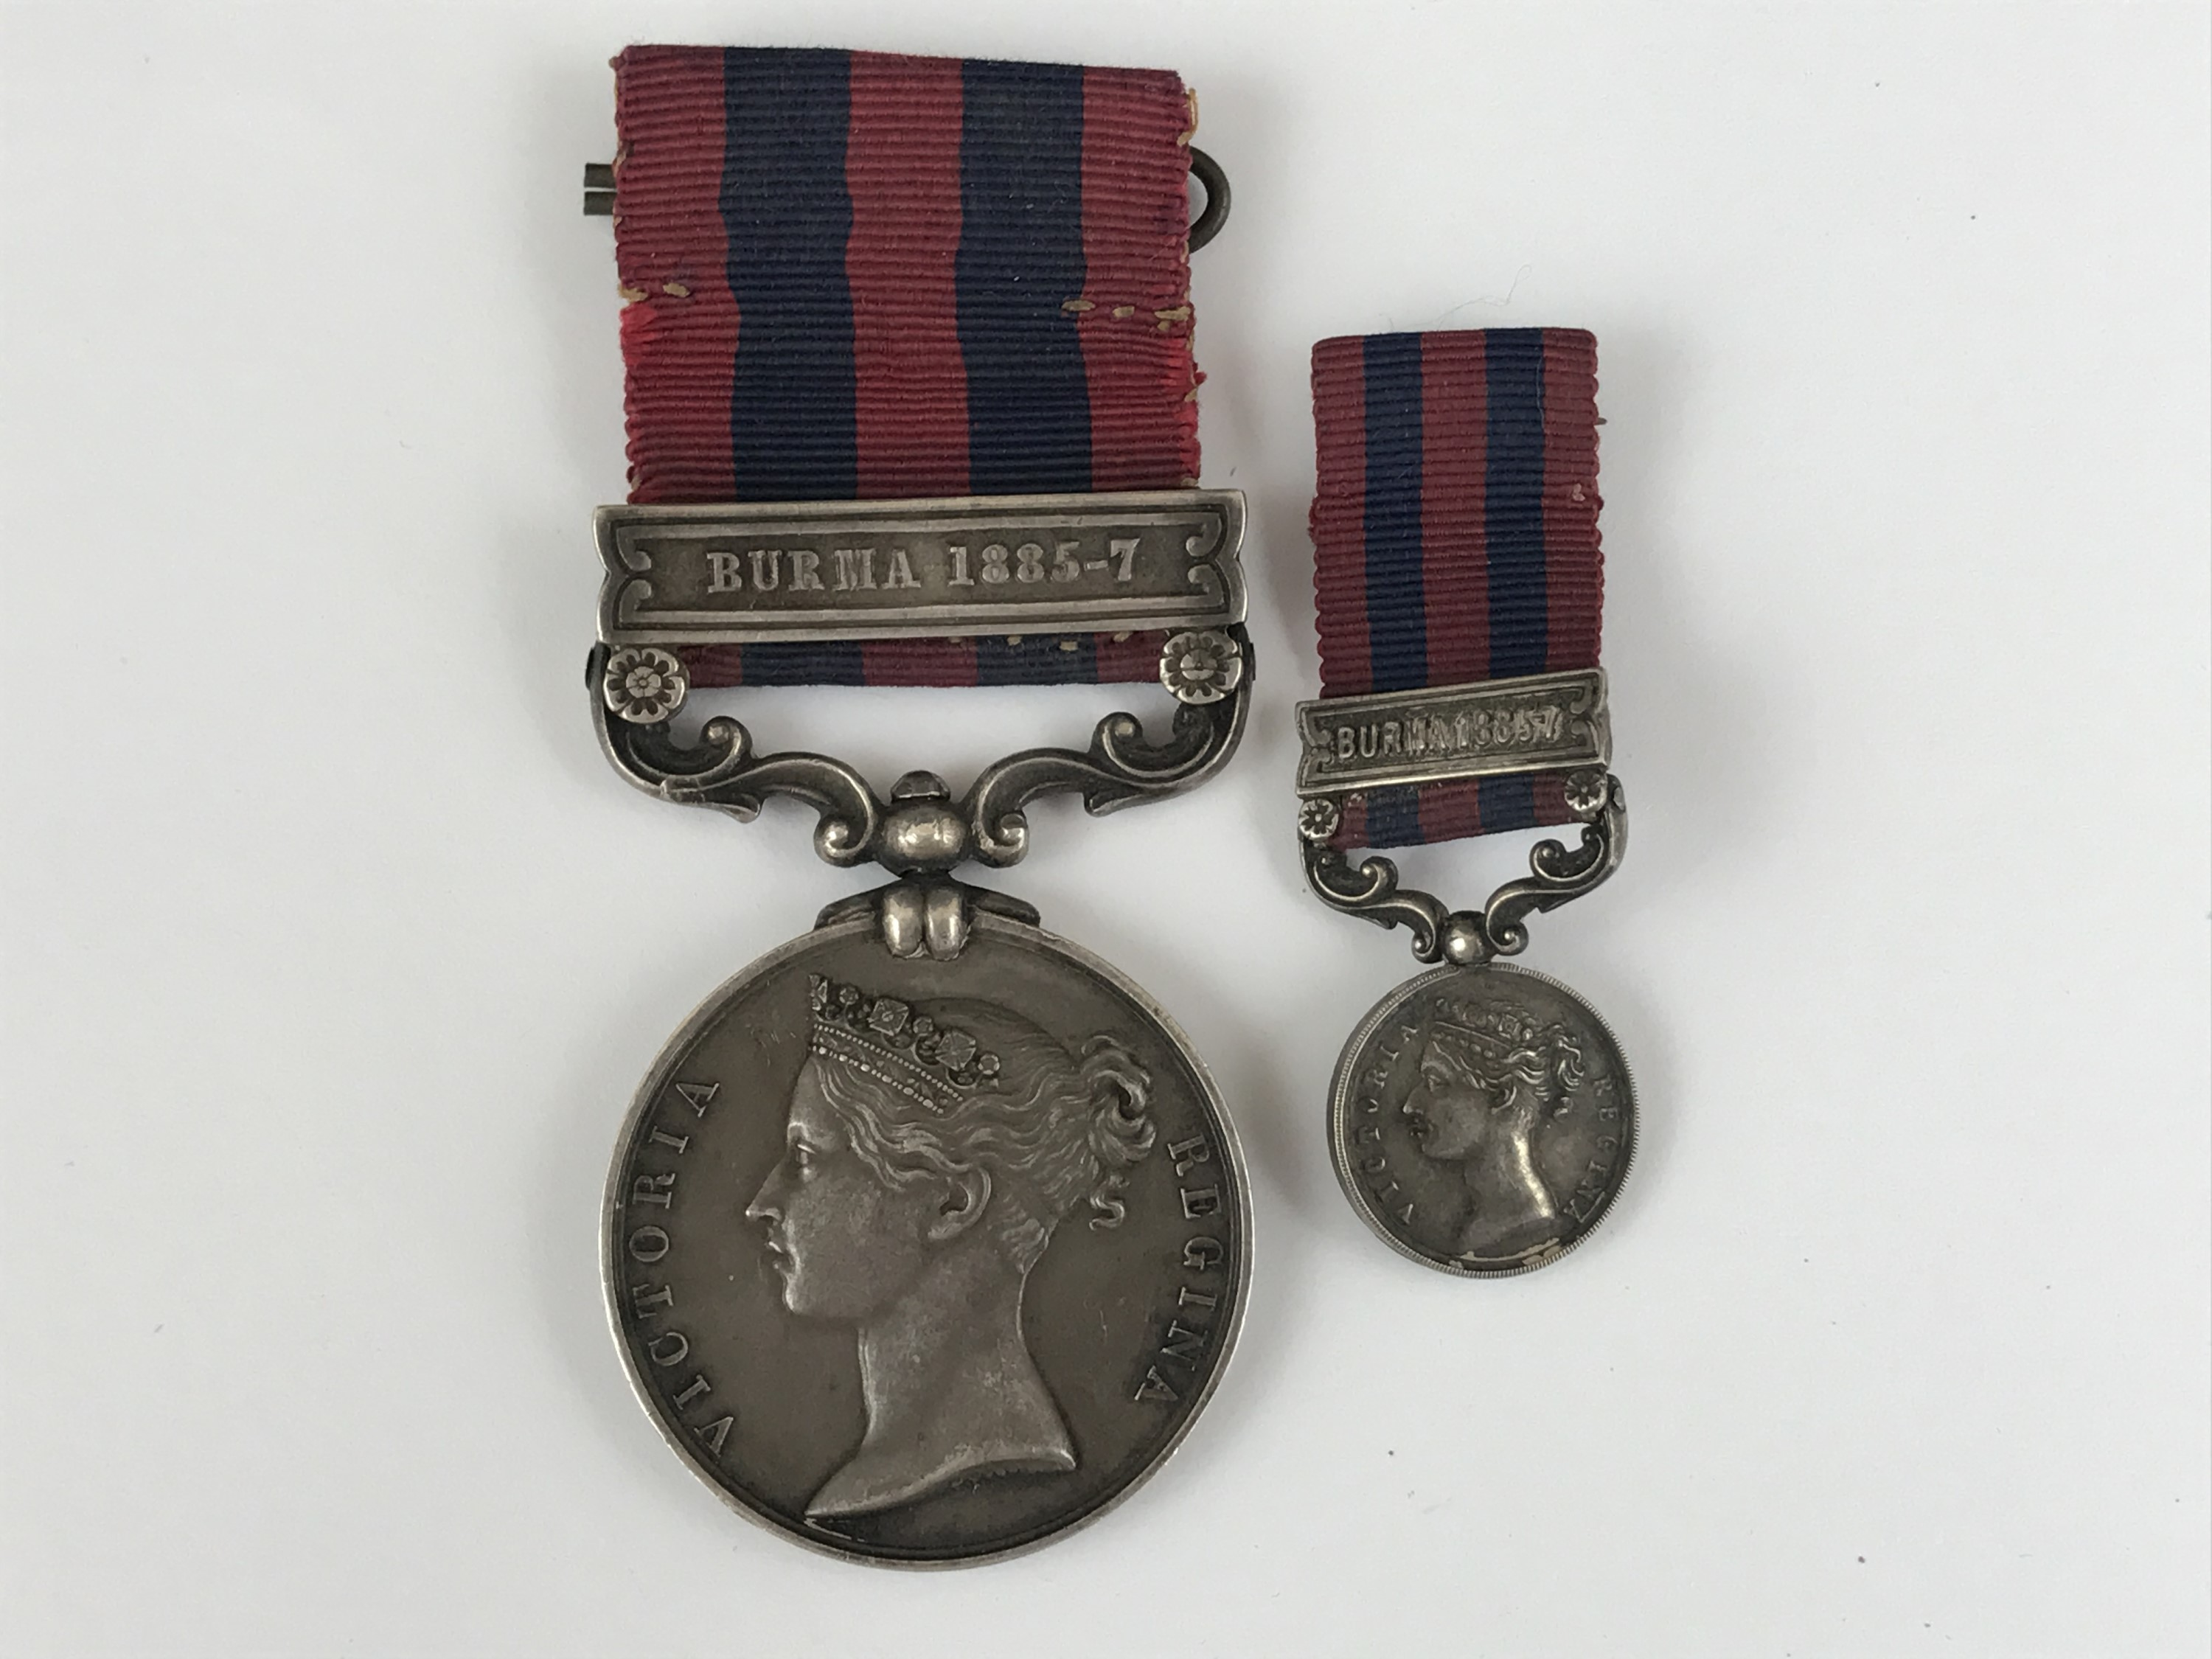 Lot 32 - An India General Service medal with Burma 1885-7 clasp to Captain J A C Widderburn, 2nd Bengal